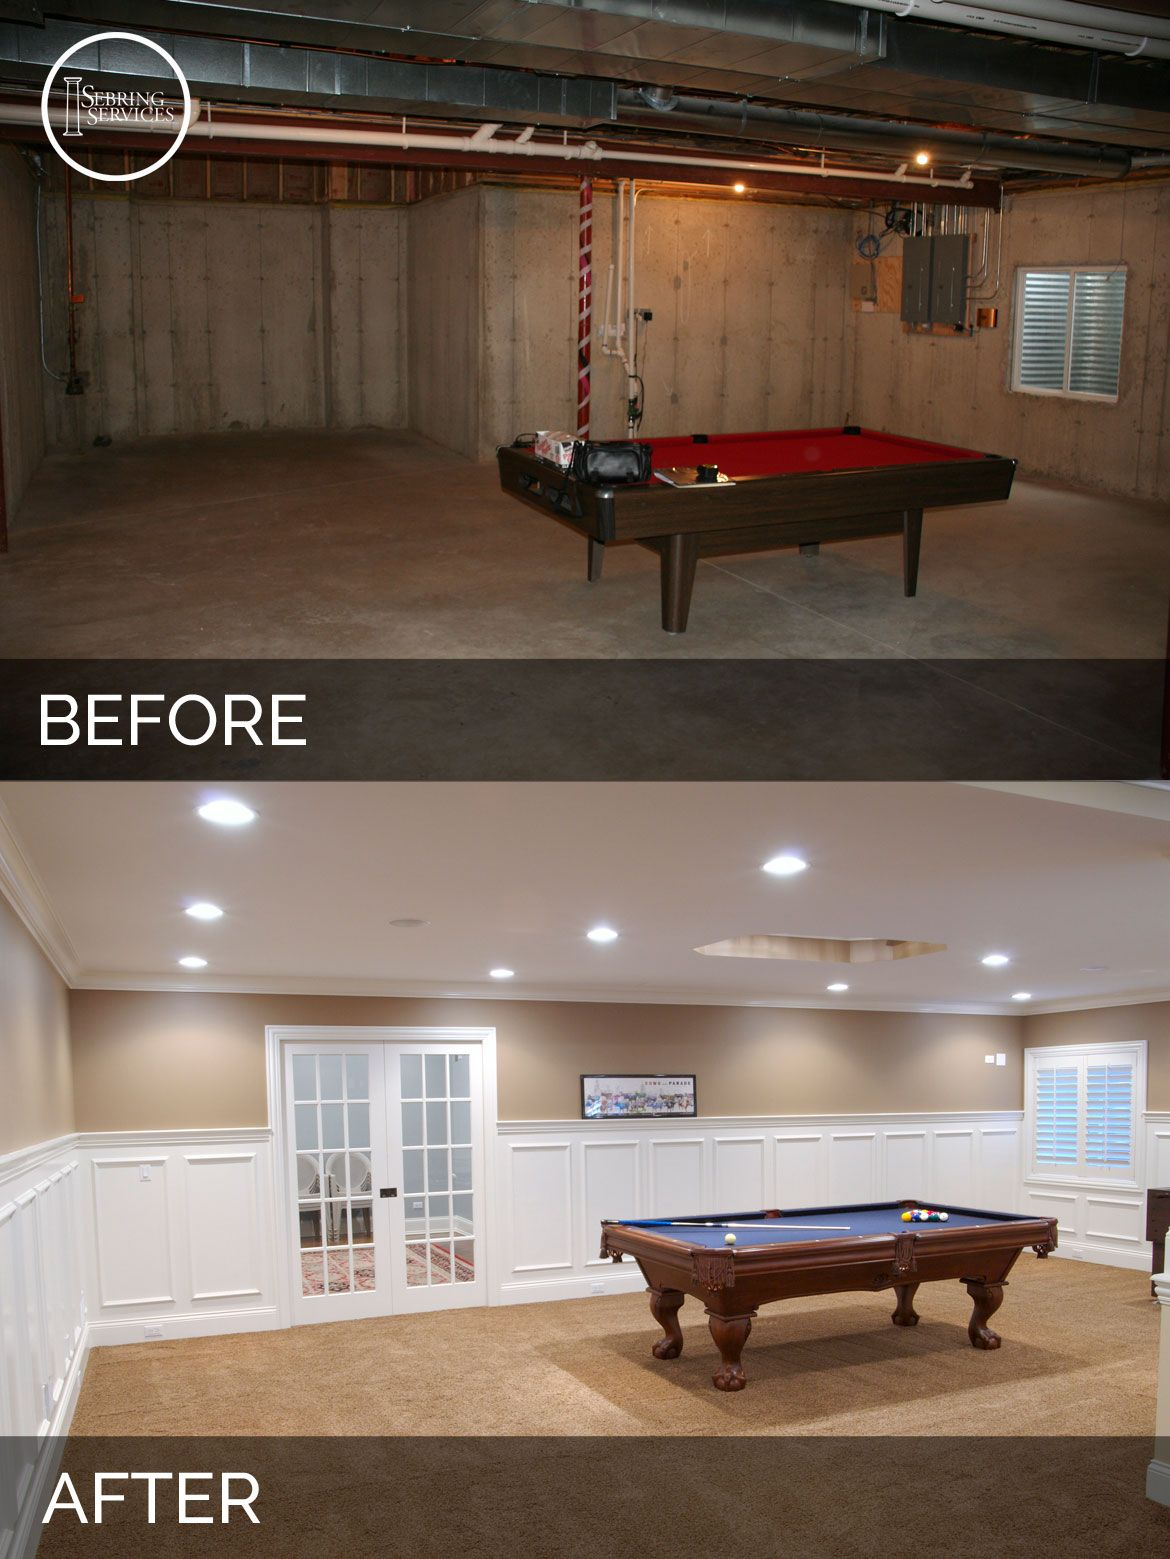 Before And After Basement Remodeling   Sebring Services